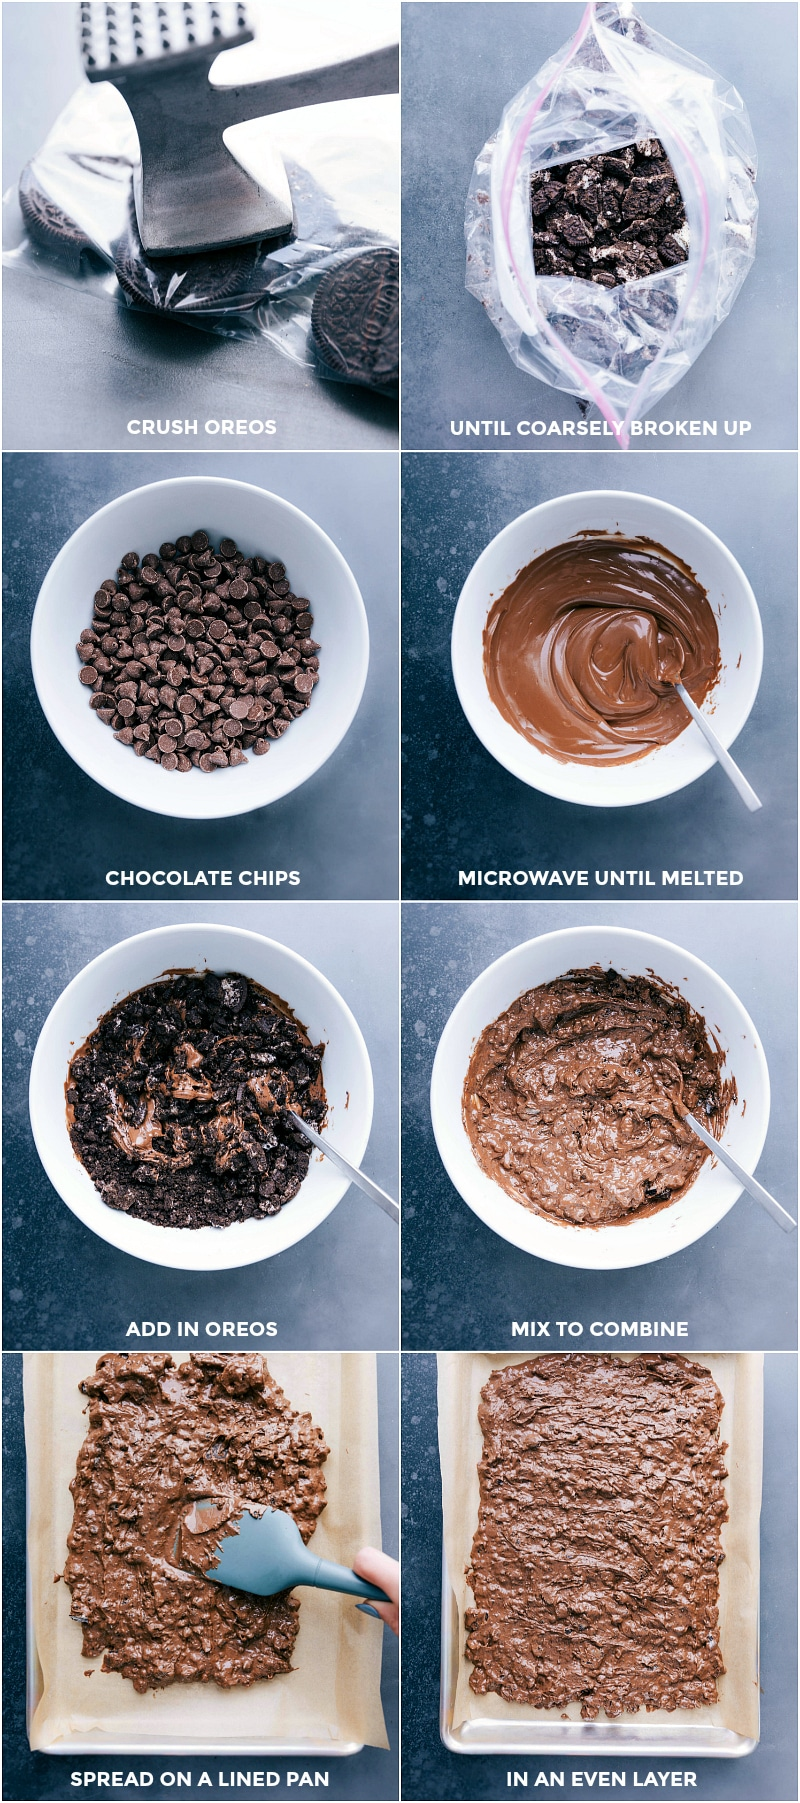 Process shots-- images of the Oreos being crushed; chocolate being melted; chocolate and Oreos being combined and spread over a sheet pan.